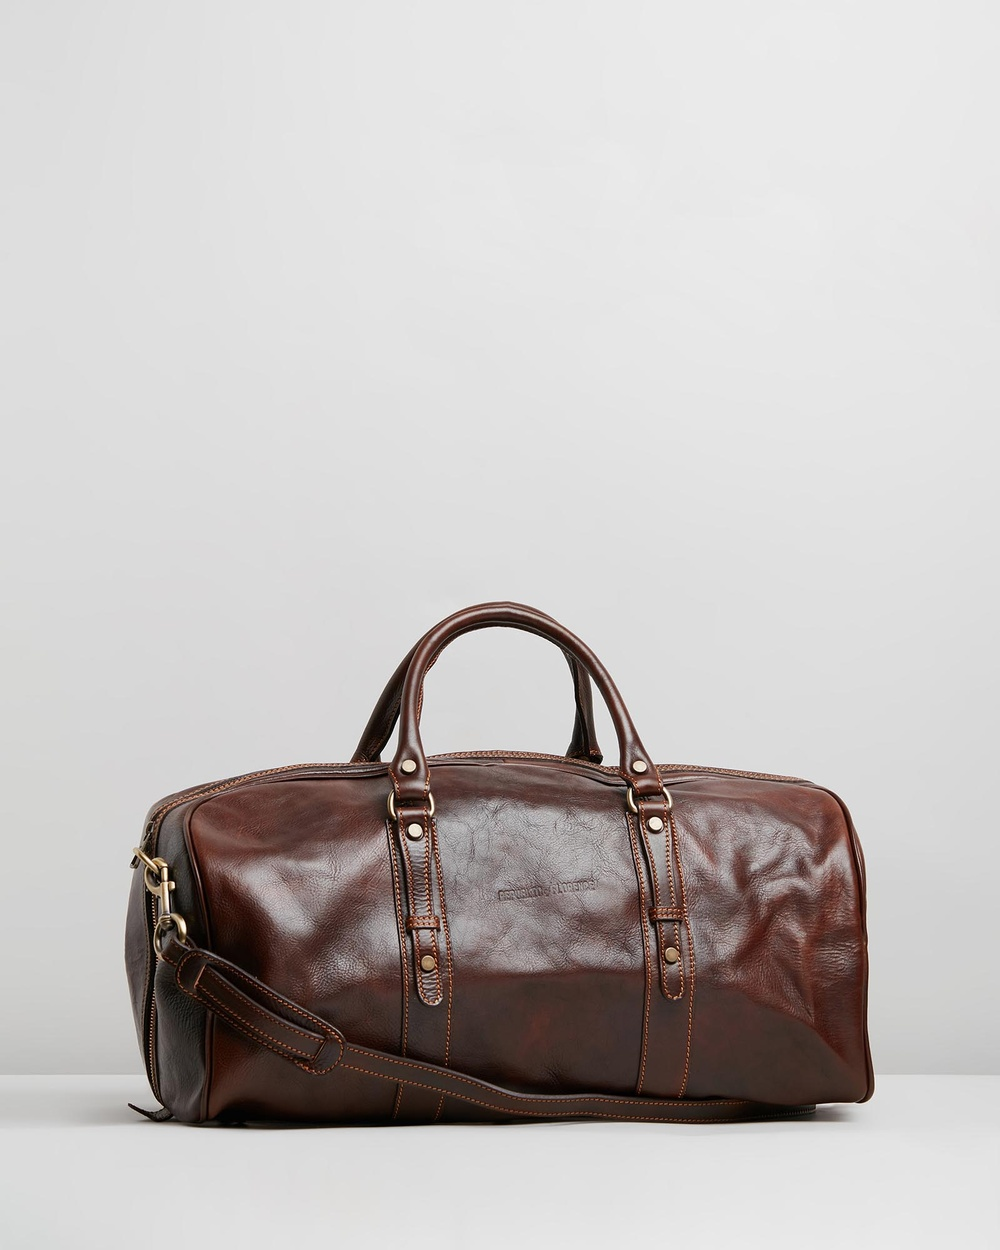 Republic of Florence Polo Duffle Bags Chocolate